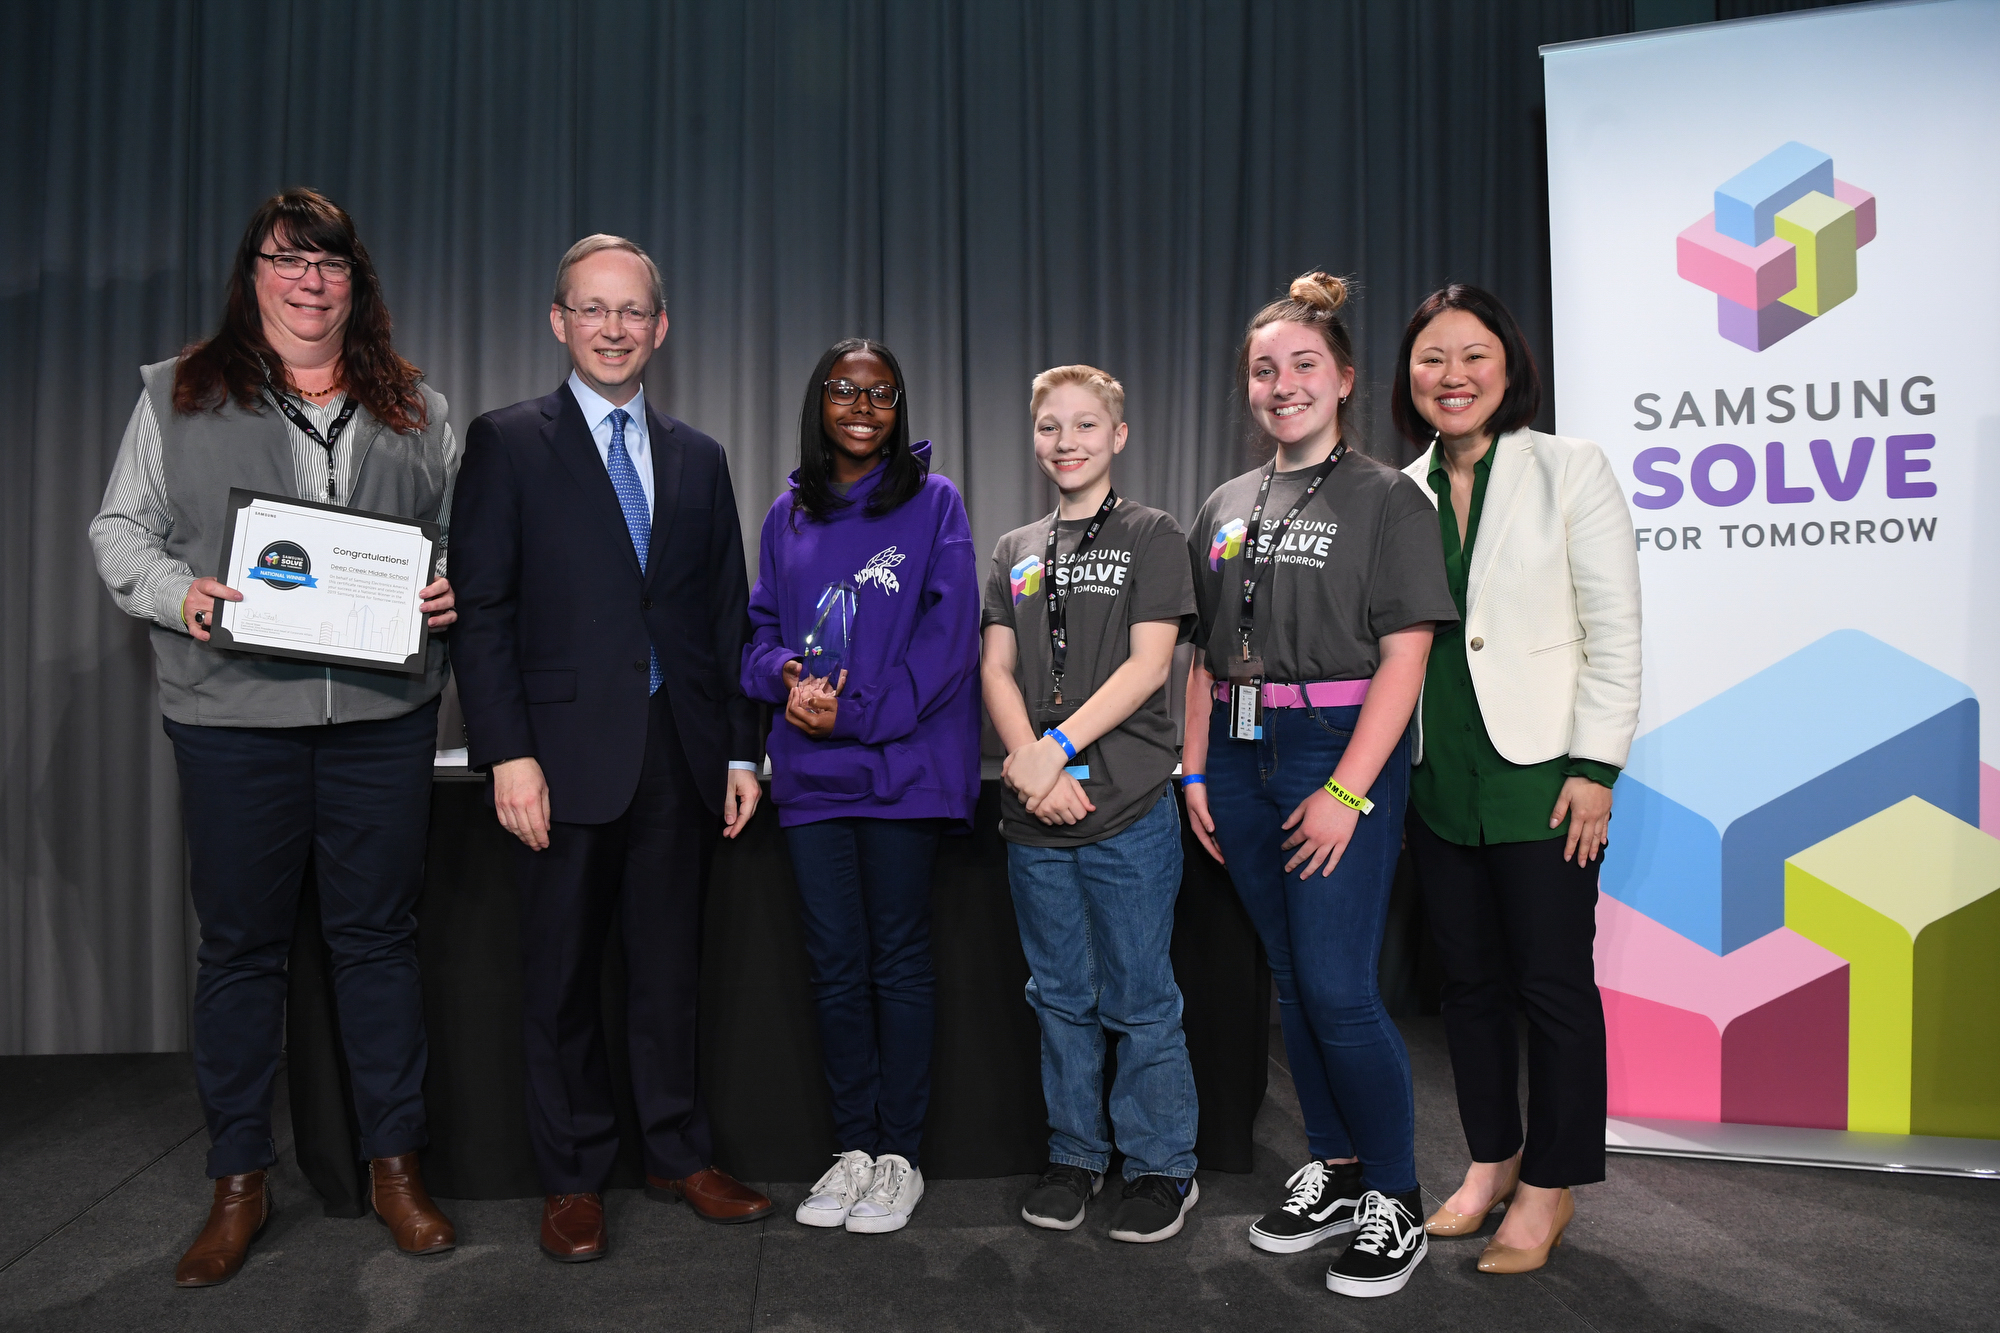 Deep Creek Middle School in Chesapeake, Virginia was named a 2019 national winner in the Samsung Solve for Tomorrow Contest at a ceremony on Tuesday, April 2, 2019 at the Intrepid Sea, Air & Space Museum in New York City. Teacher Paula Labbe and students Olivia Lyons, Hunter Johnston and Tia Davis received the award from Samsung's Dr. David Steel, EVP and Head of Corporate Affairs and Ann Woo, Senior Director of Corporate Citizenship. The students won for creating a website and app for high-need students with poor vision to access free prescription glasses.